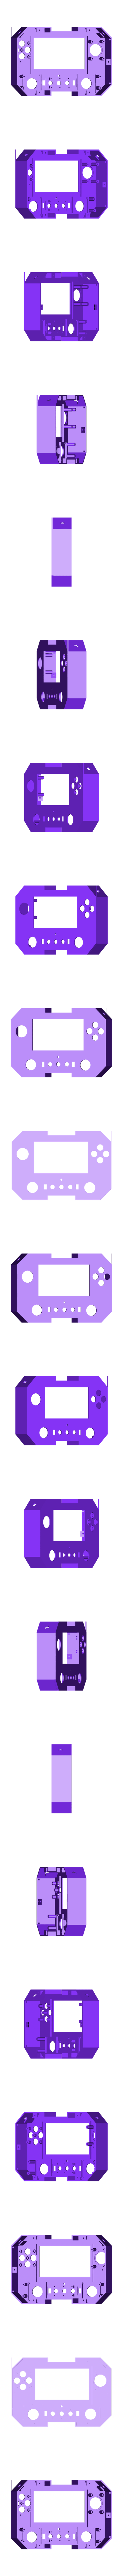 raspboy.stl Download free STL file RaspBoy • Model to 3D print, CircuitoMaker